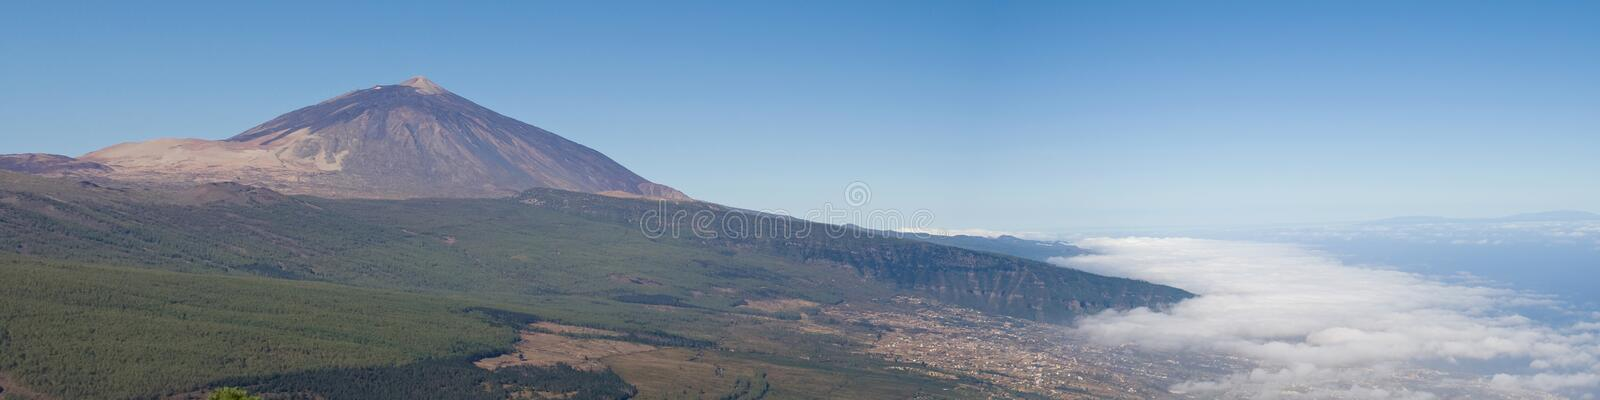 Panorama of the Mount Teide and the Orotava Valley royalty free stock image